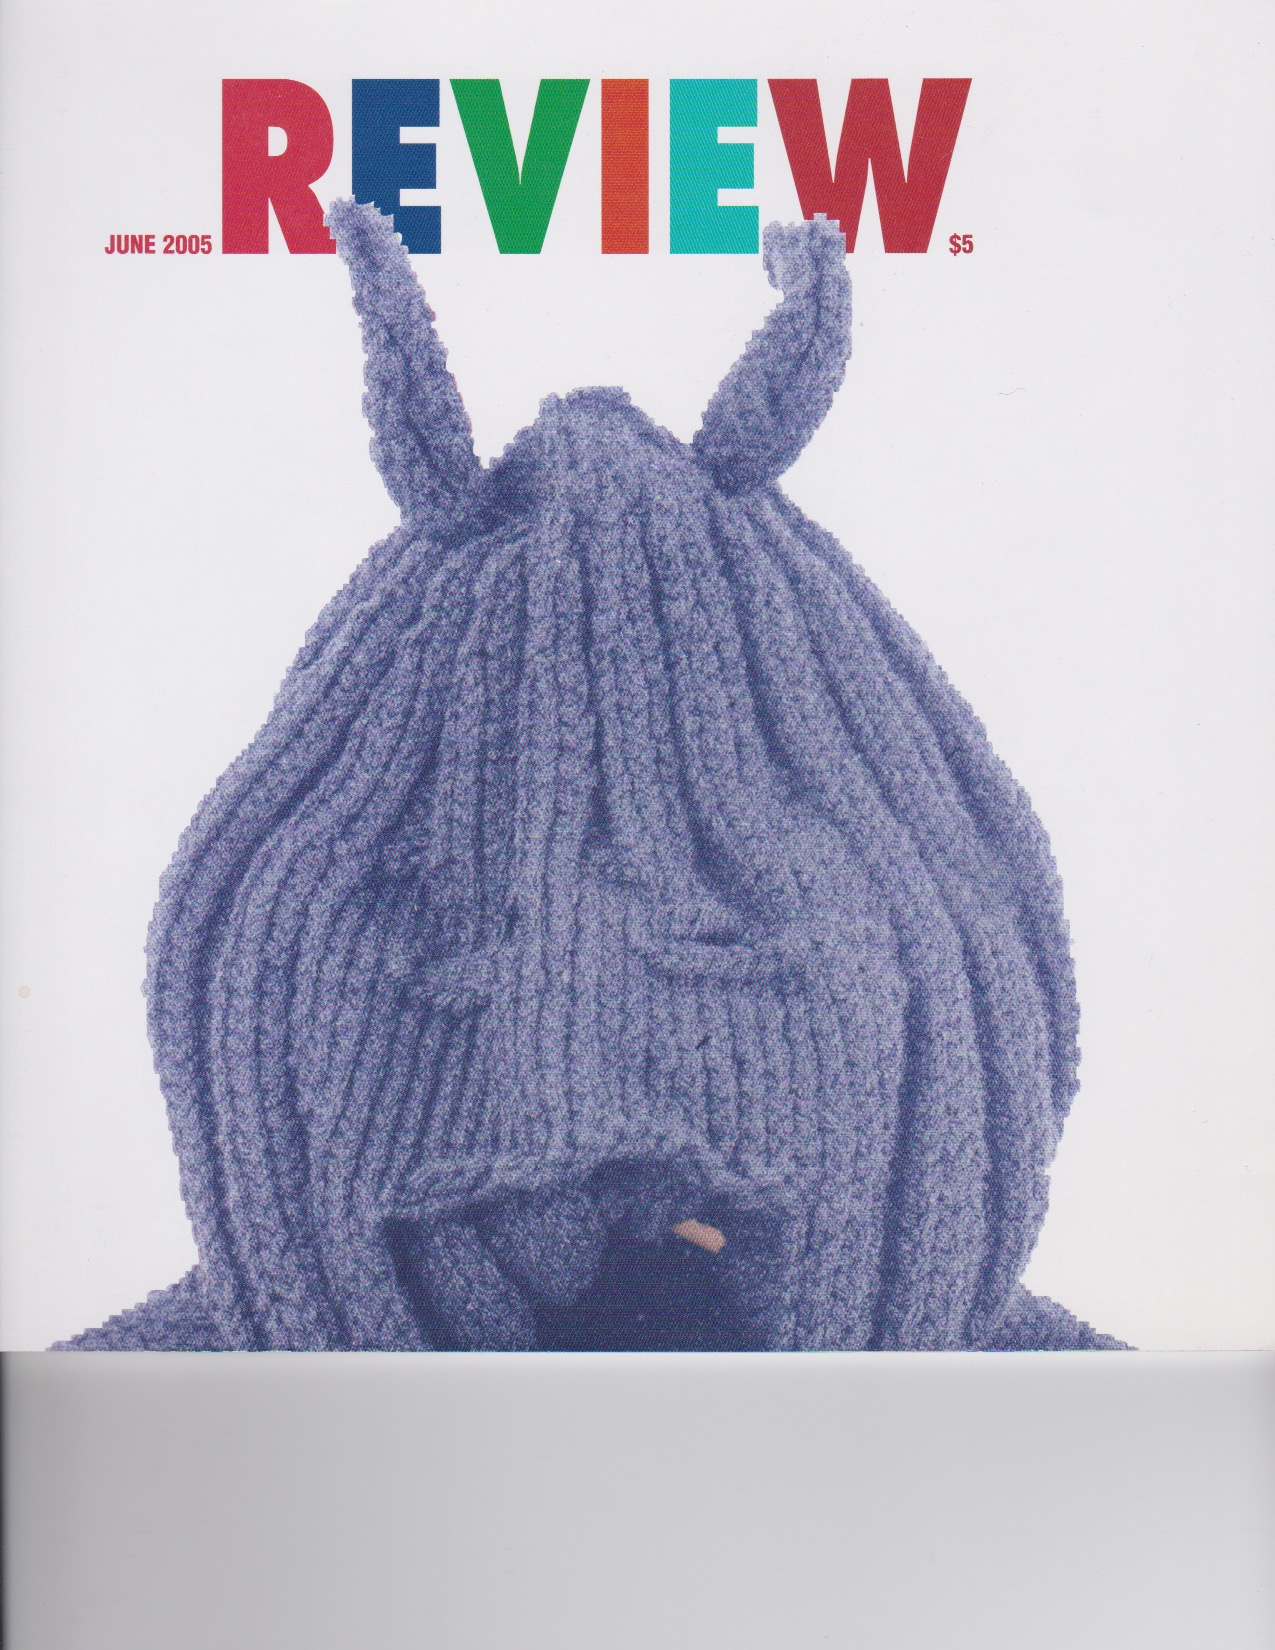 Review cover.jpeg